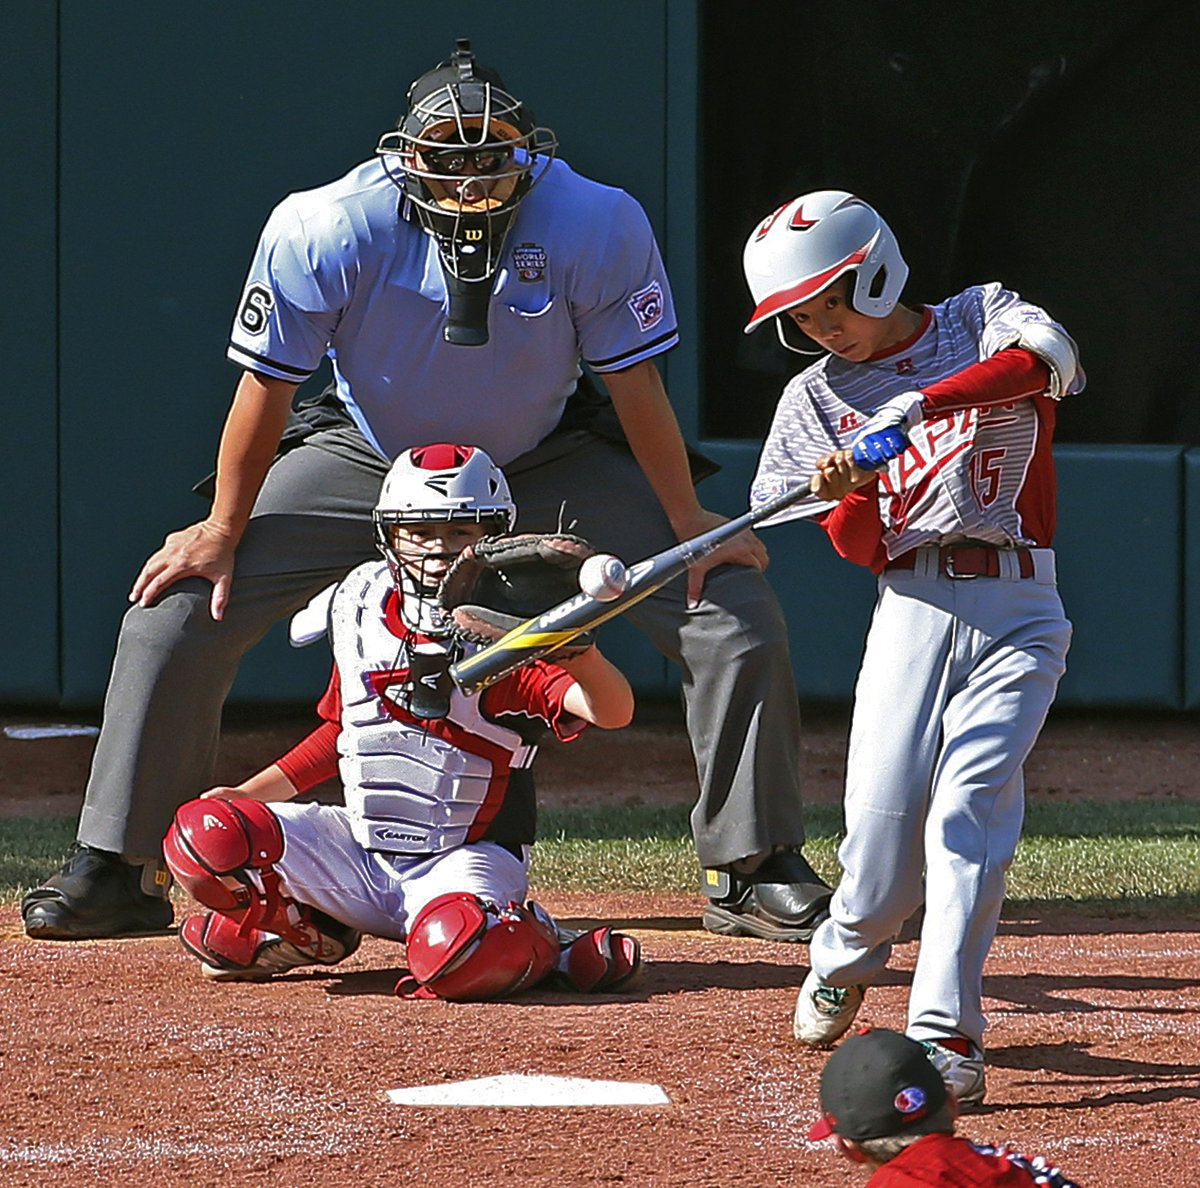 Japan is 3-0 in this #LLWS and outscoring opponents 22-1 through 3 games.